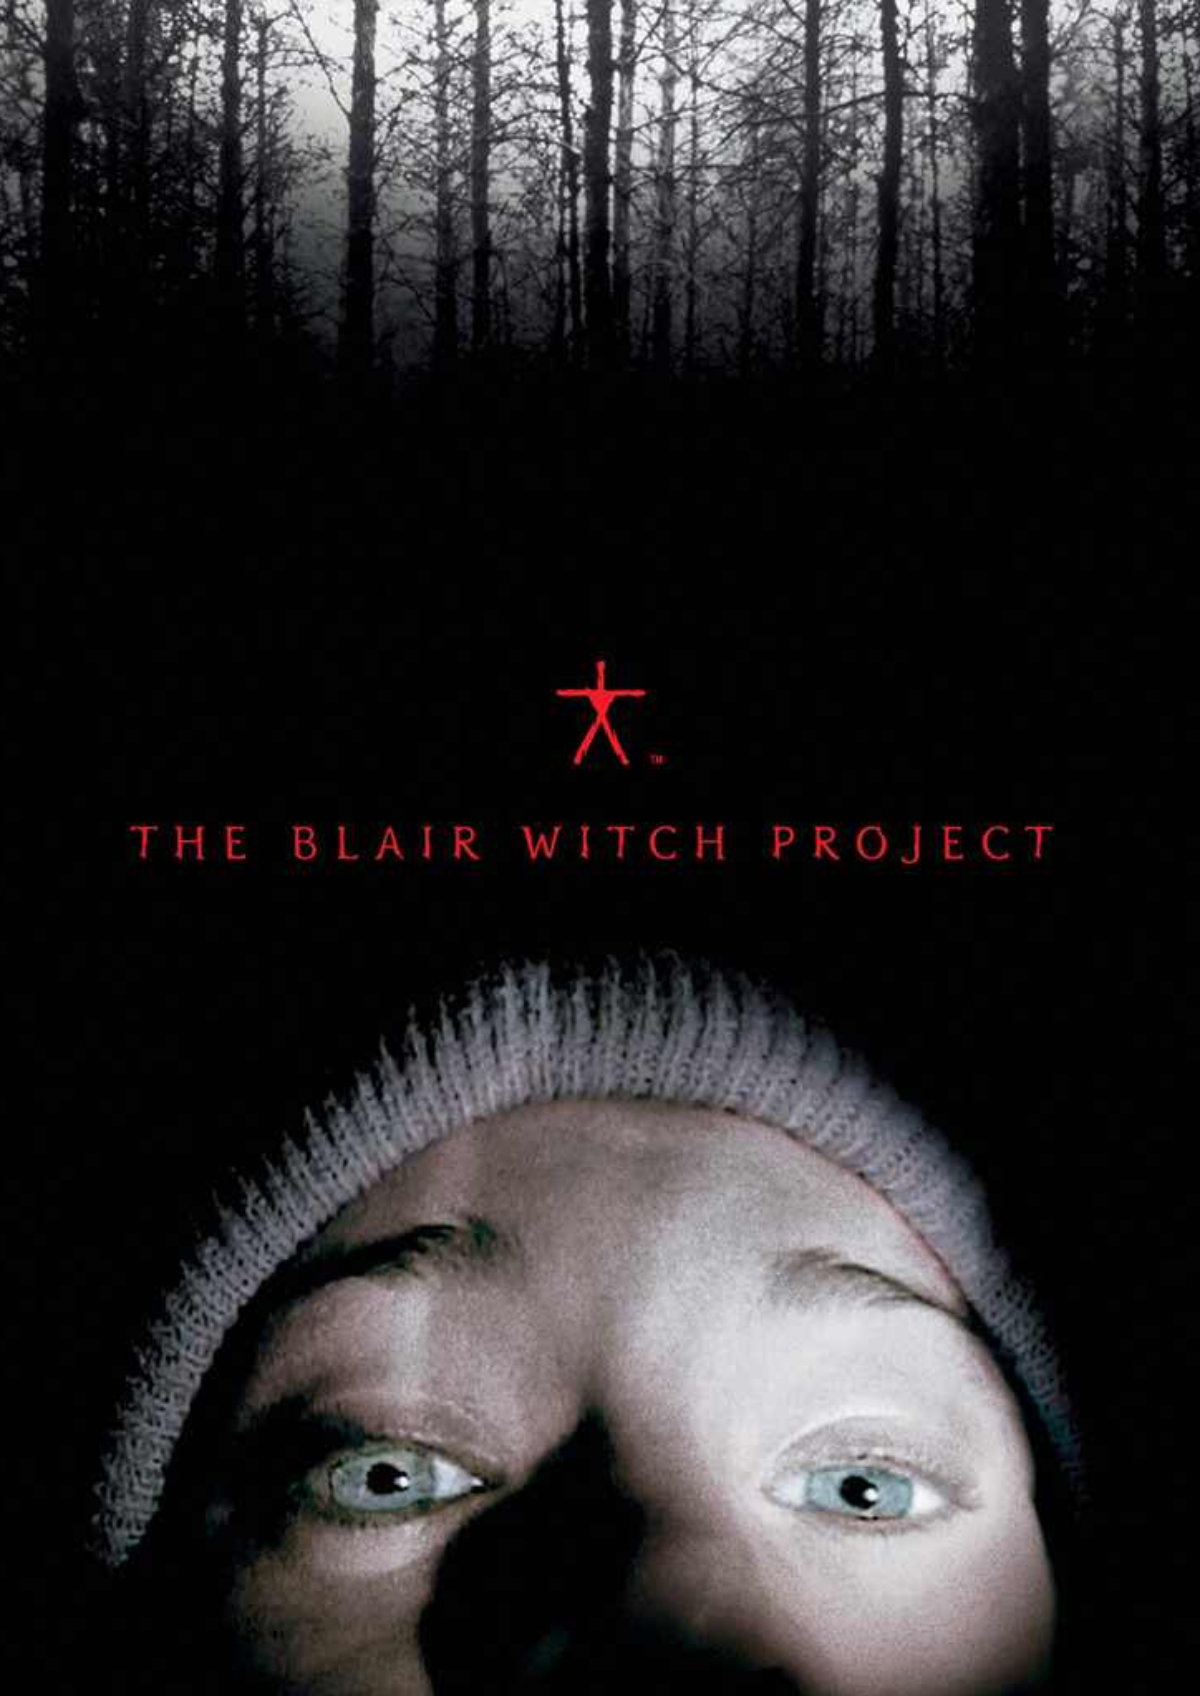 'The Blair Witch Project' movie poster